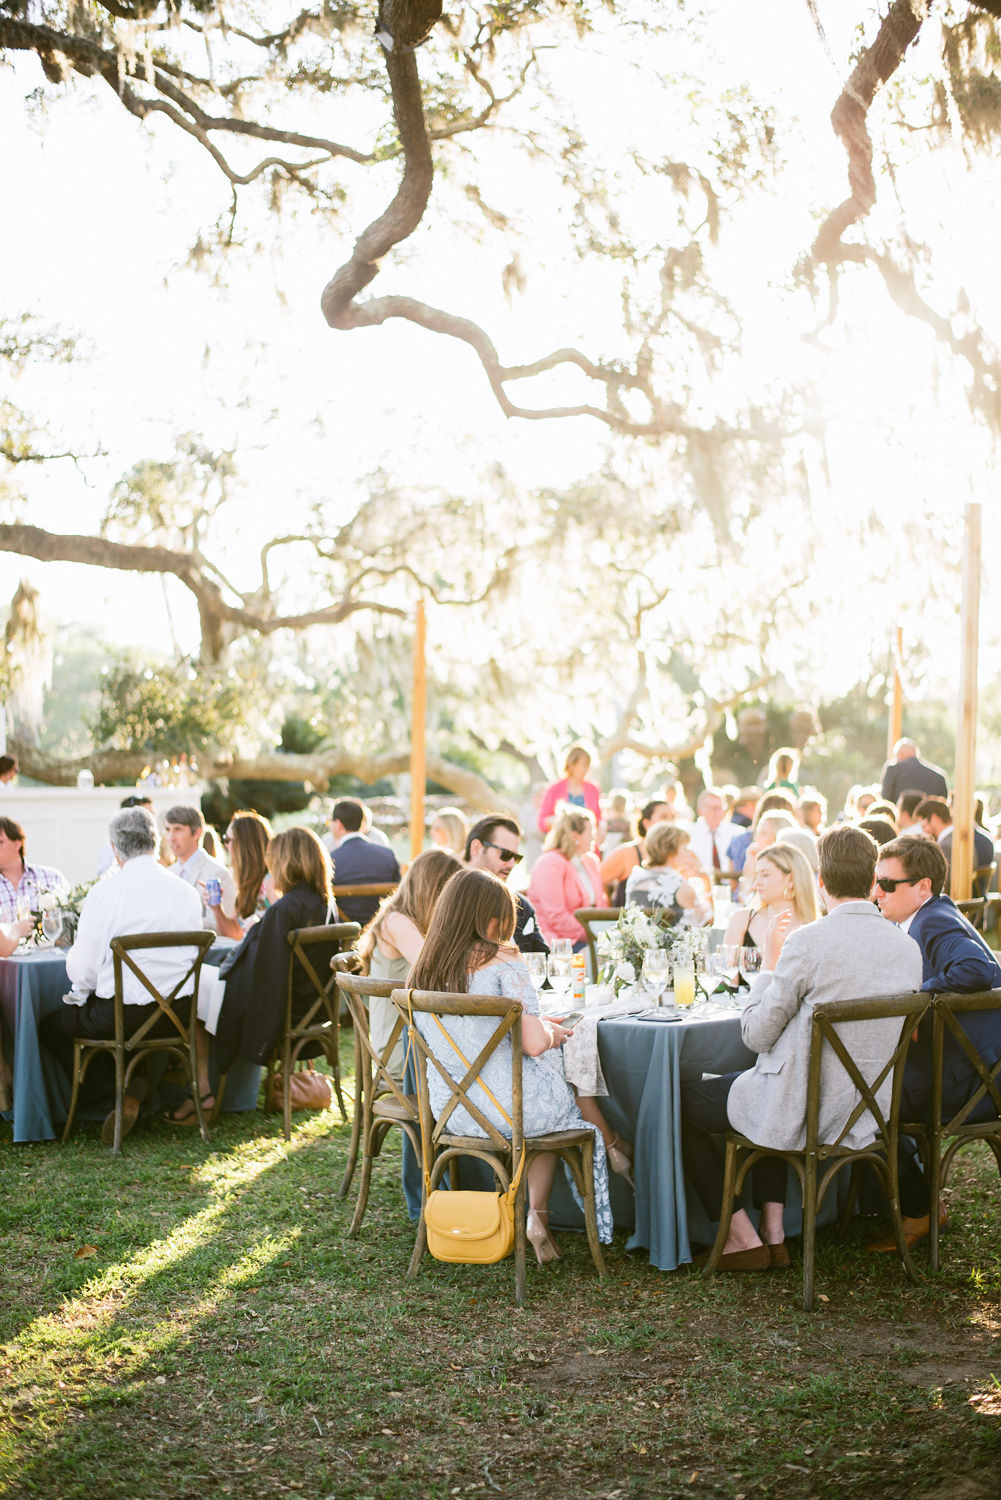 Edisto Island Wedding at Cypress Trees Plantation - Charleston Destination Luxury Wedding Planner - Scarlet Plan & Design (136).jpg